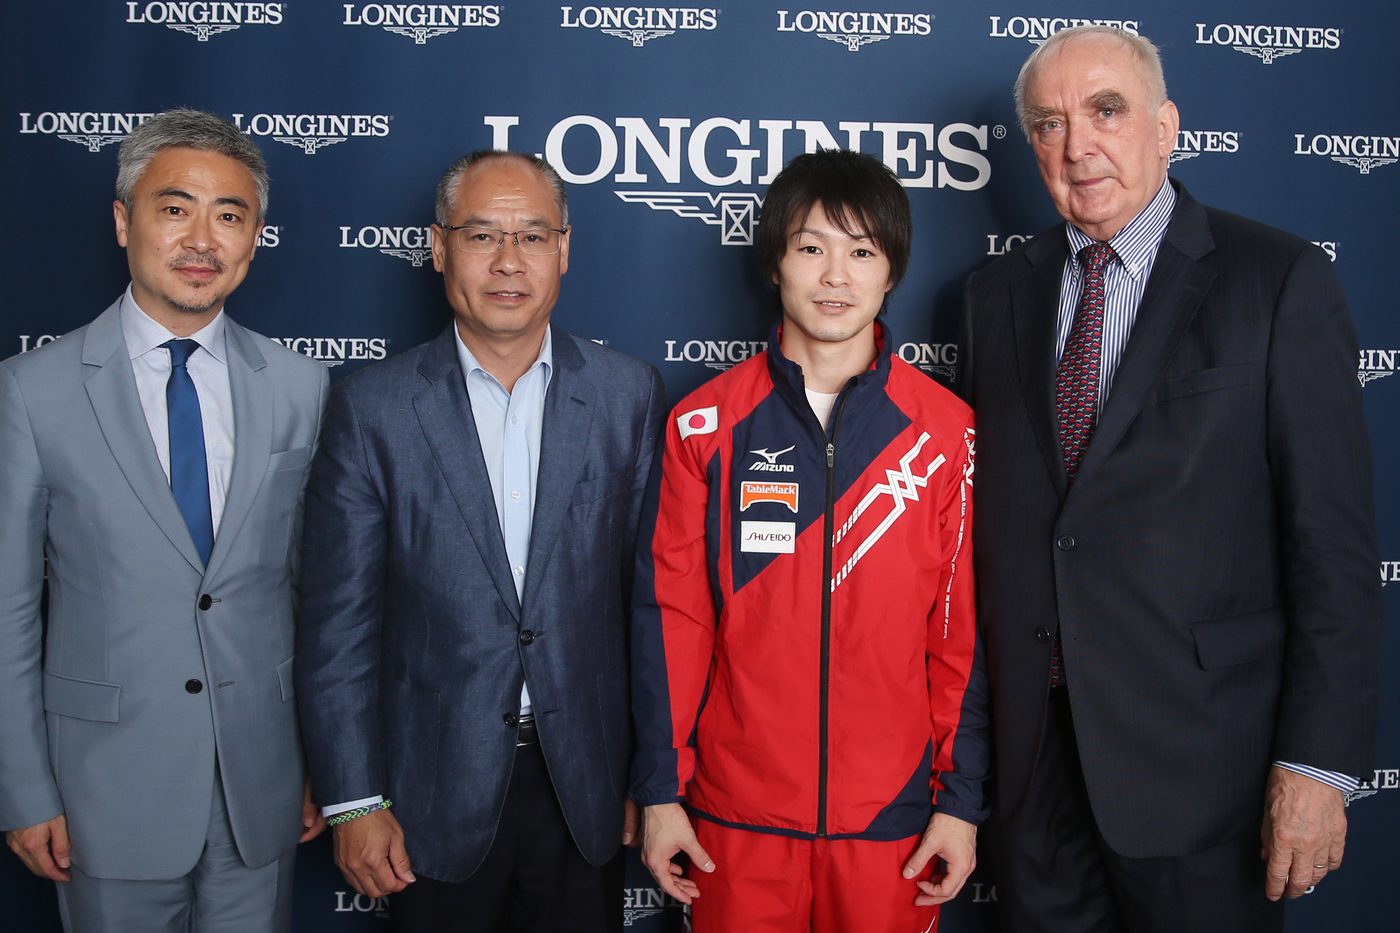 Longines Gymnastics Event: Longines celebrates elegance and performance at the 45th Artistic Gymnastics World Championships in Nanning (Nanning, CHINA)  5